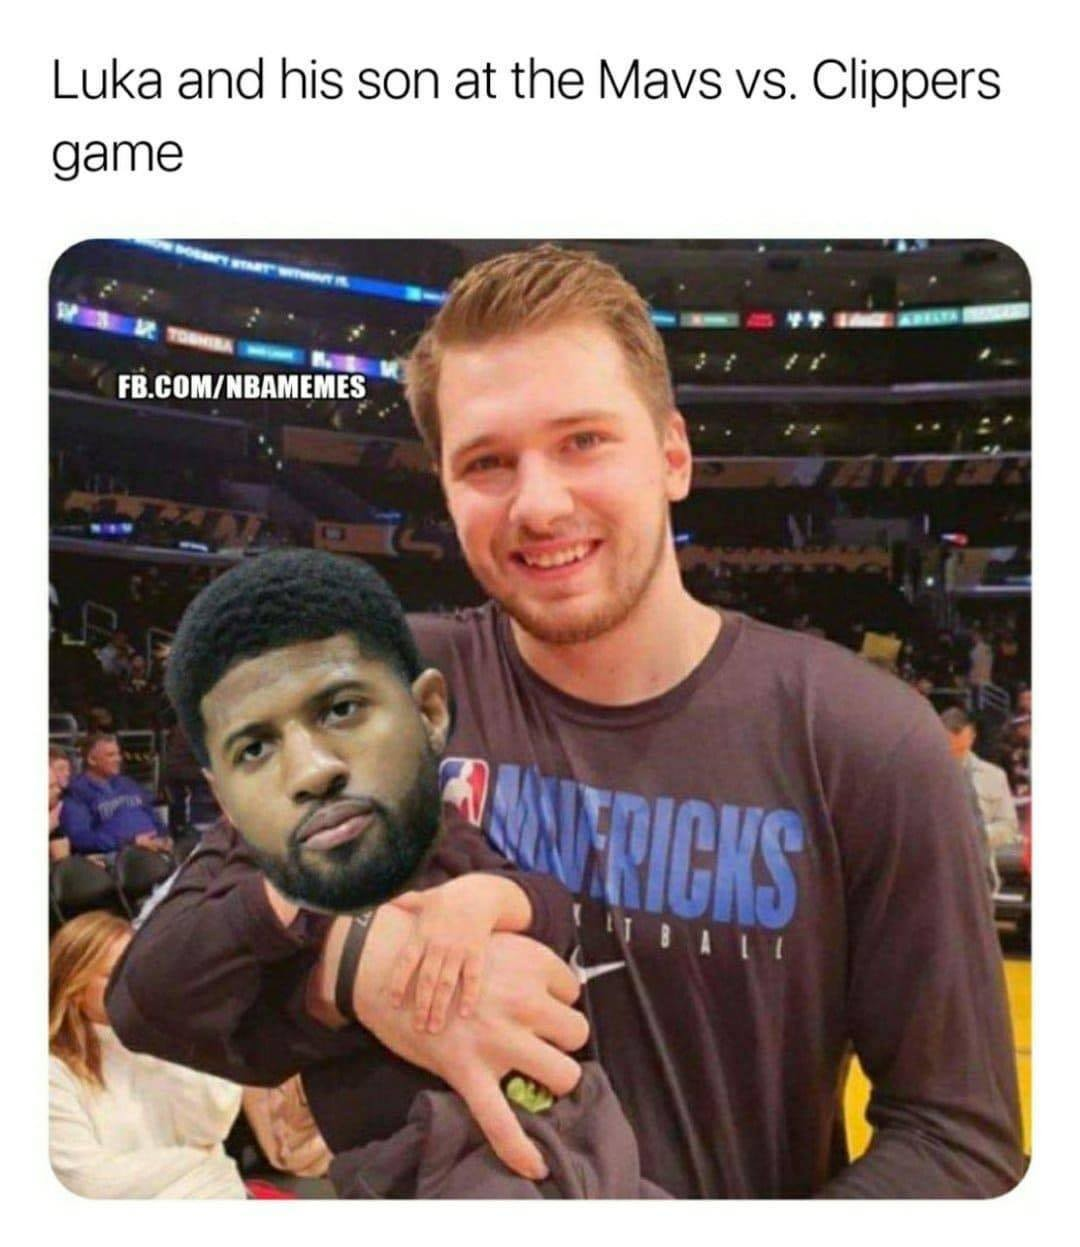 Paul Doncic has a nice ring to it 😂